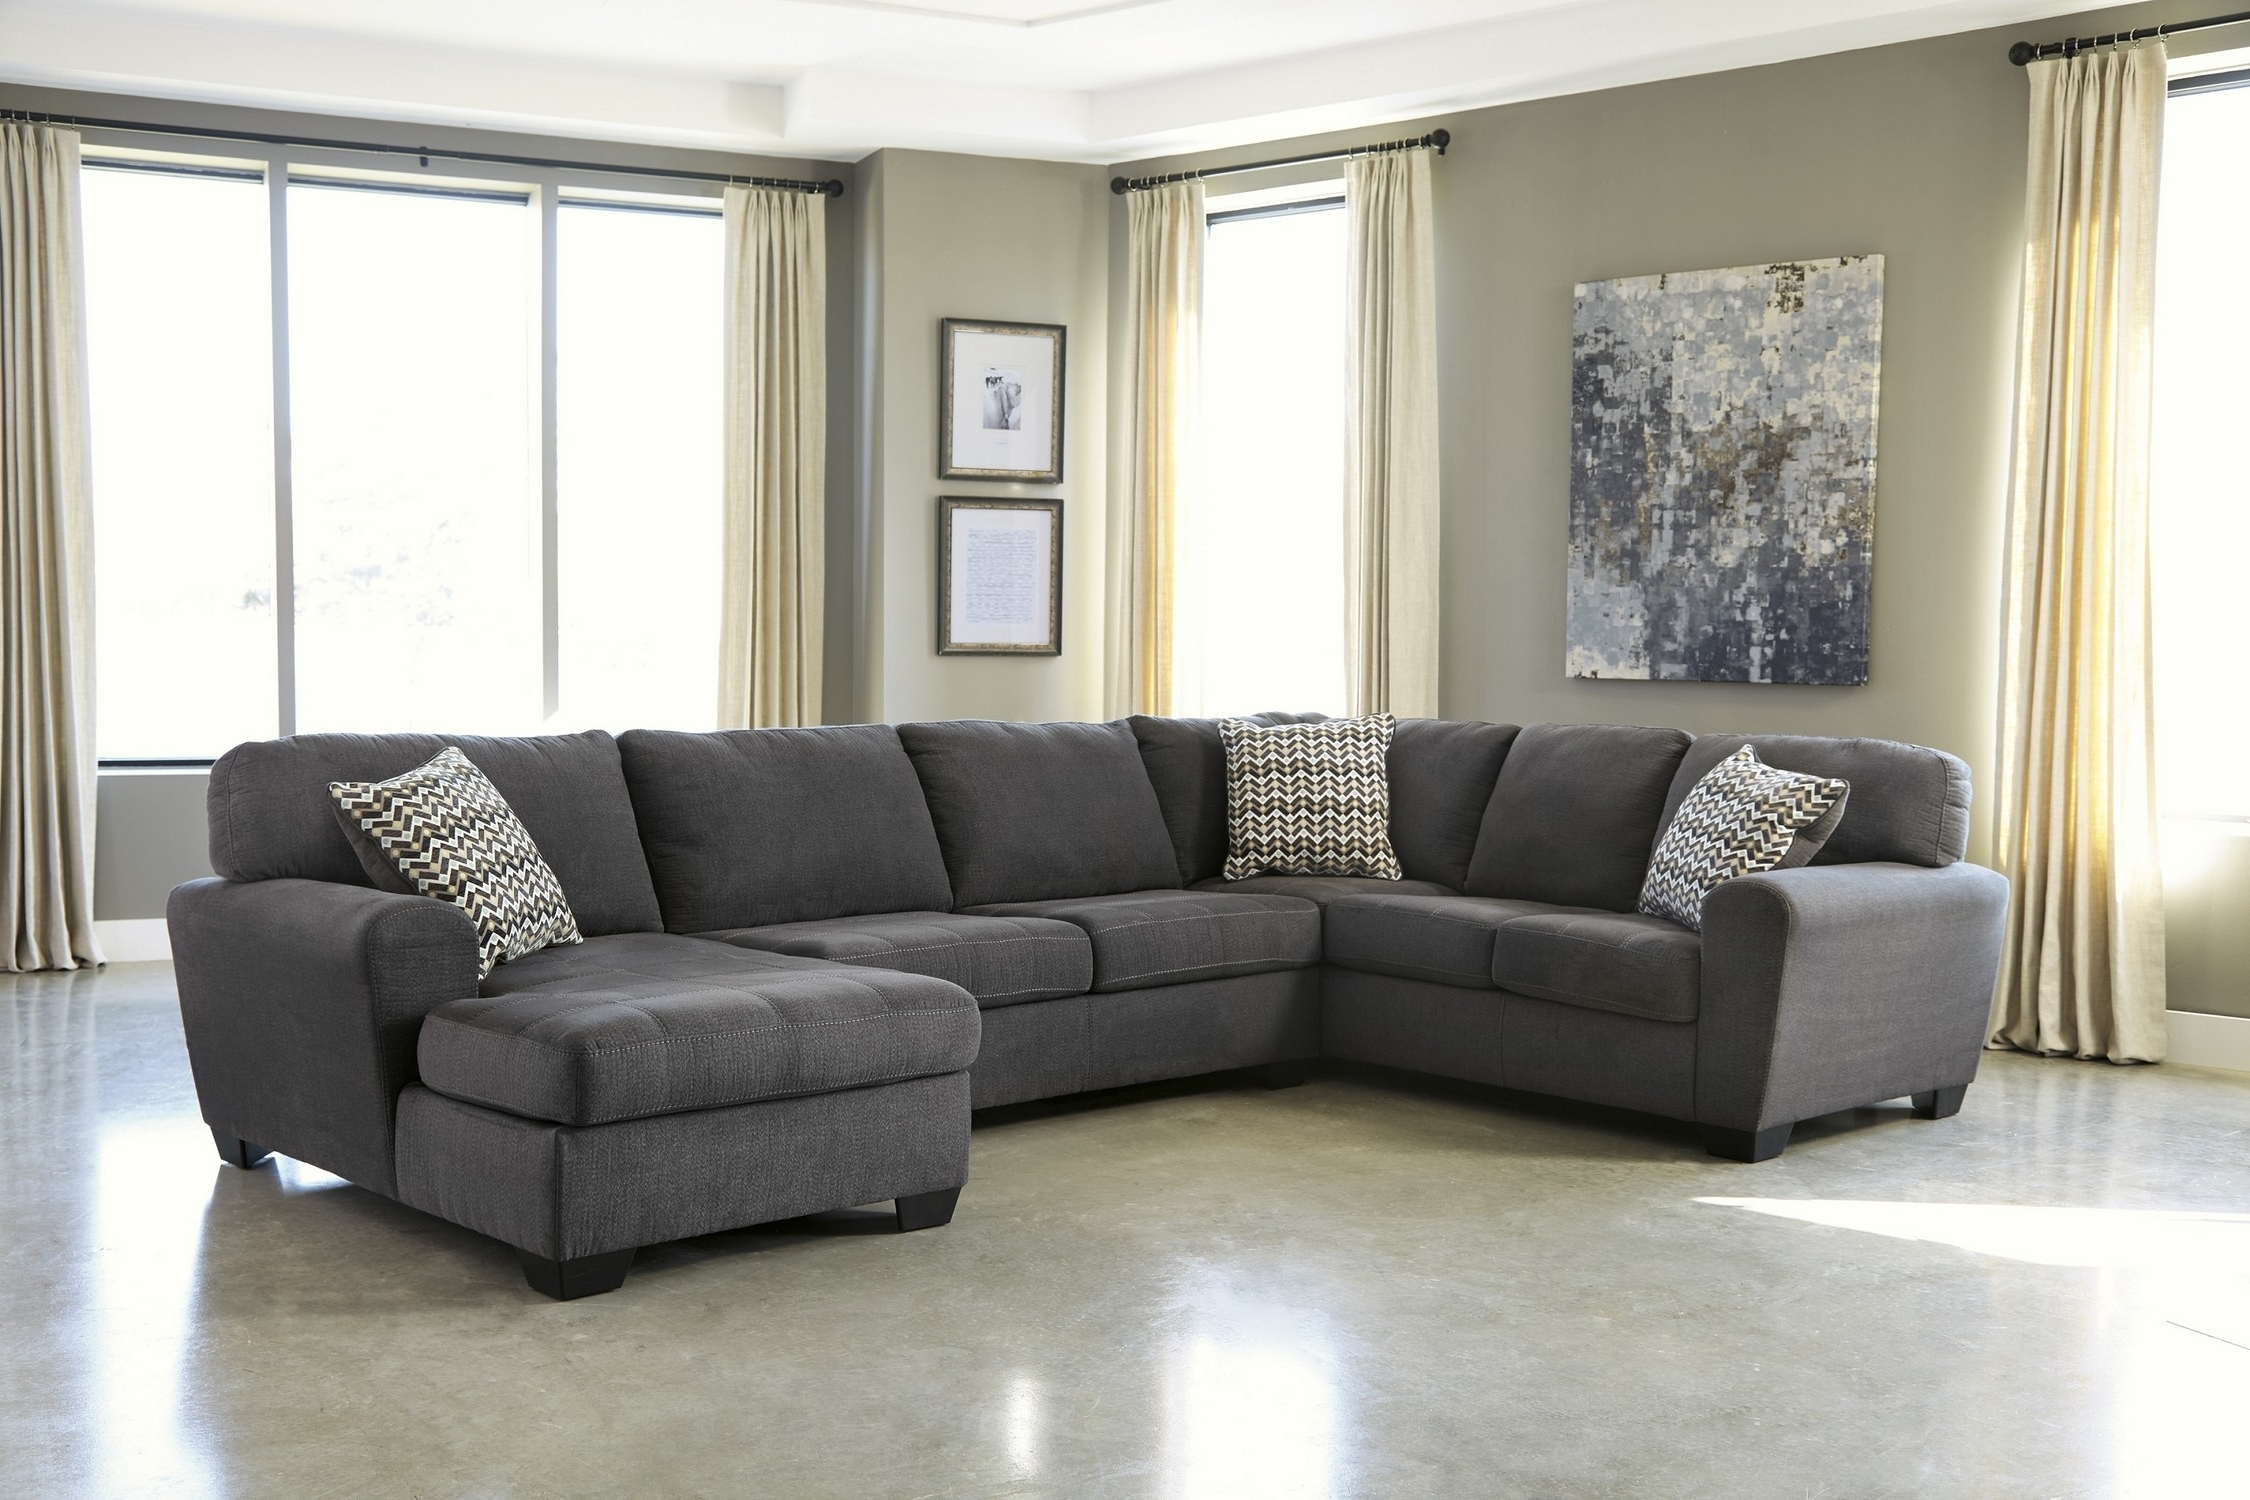 Most Recent Alenya 3 Piece Sectional Quartz Fabric Reclining Sectional Grey Inside Grey Sectional Sofas With Chaise (View 12 of 15)